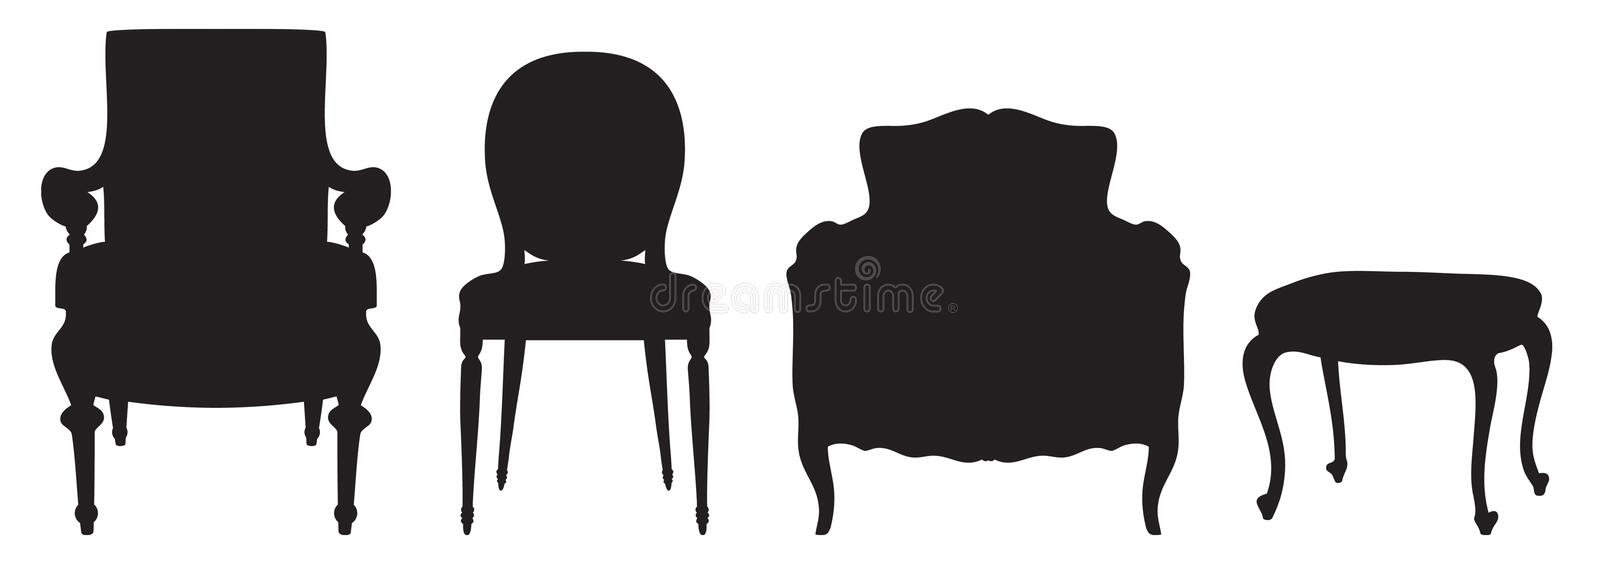 Download Vintage Seats Stock Photo - Image: 18414040